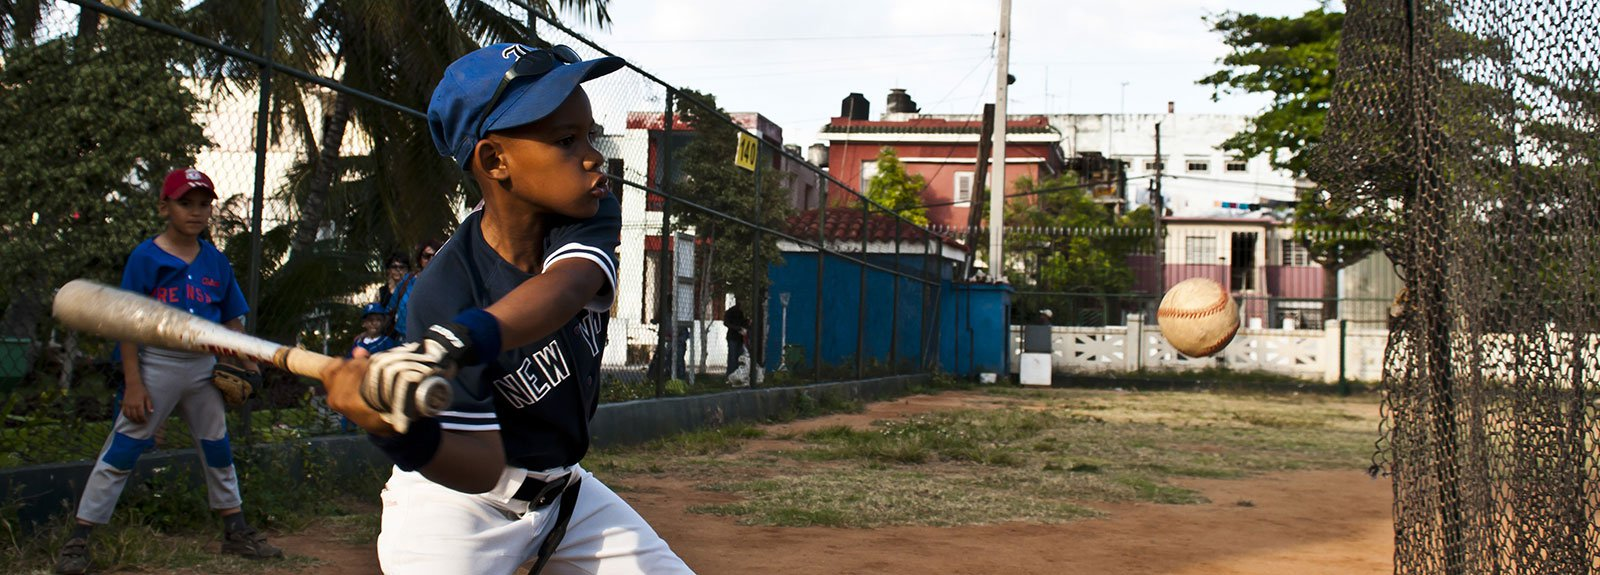 Kid playing baseball with a white and blue uniform